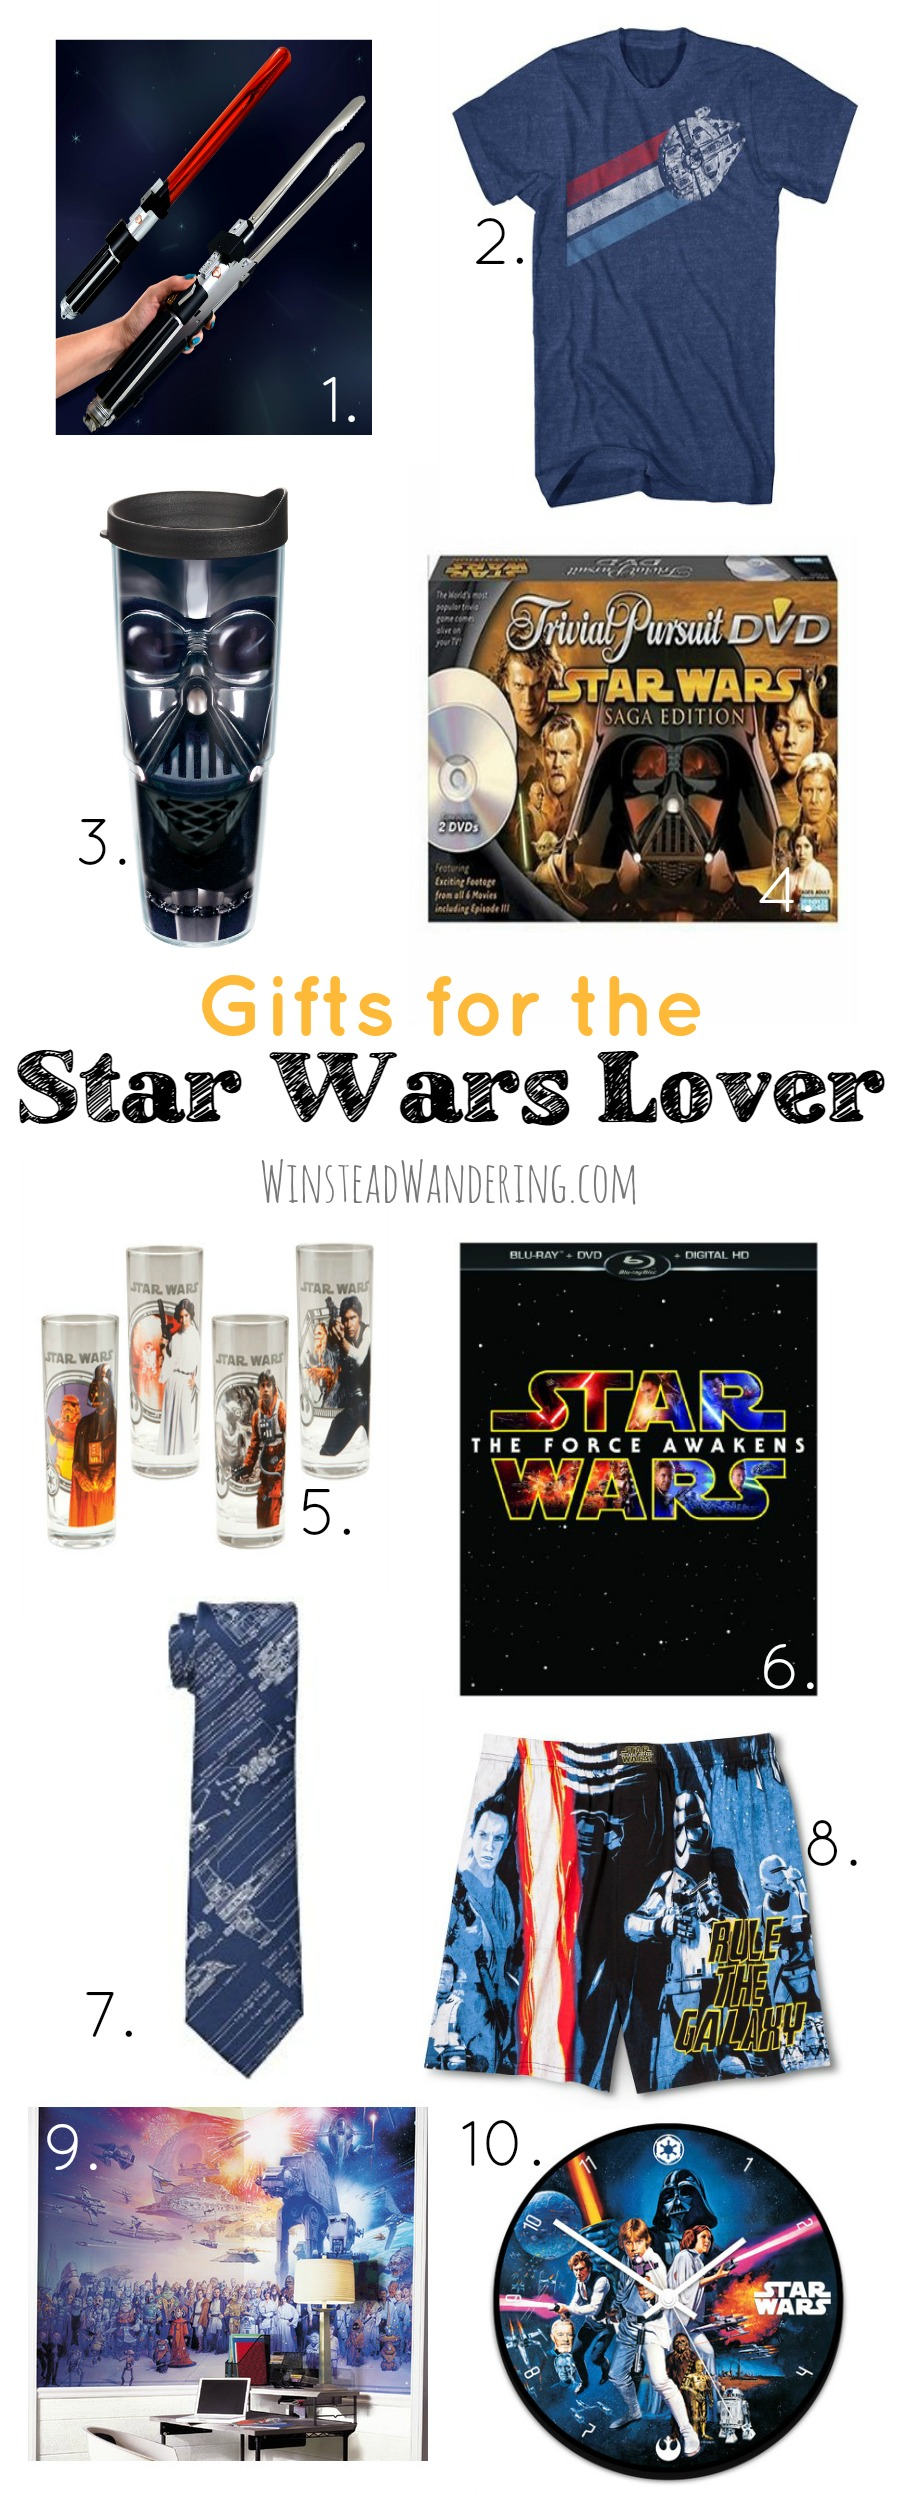 He's hard to shop for, and all the options out there can be overwhelming. Take the guess work out of gift-giving with this guide to gifts for the Star Wars lover.